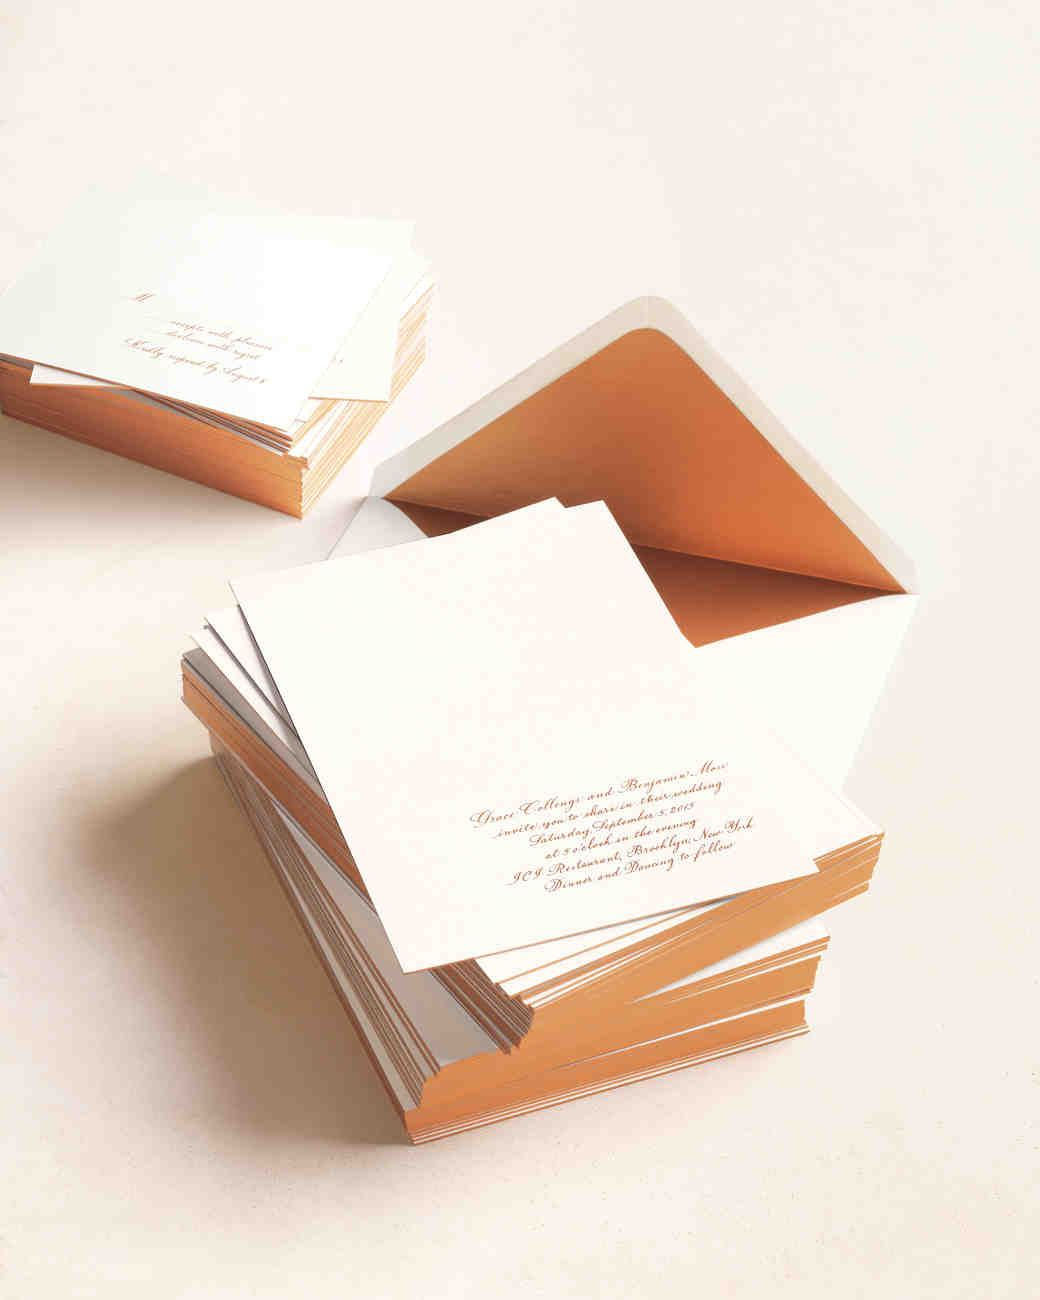 10 things you should know before mailing your wedding invitations martha stewart weddings - Addressing Wedding Invitations Etiquette